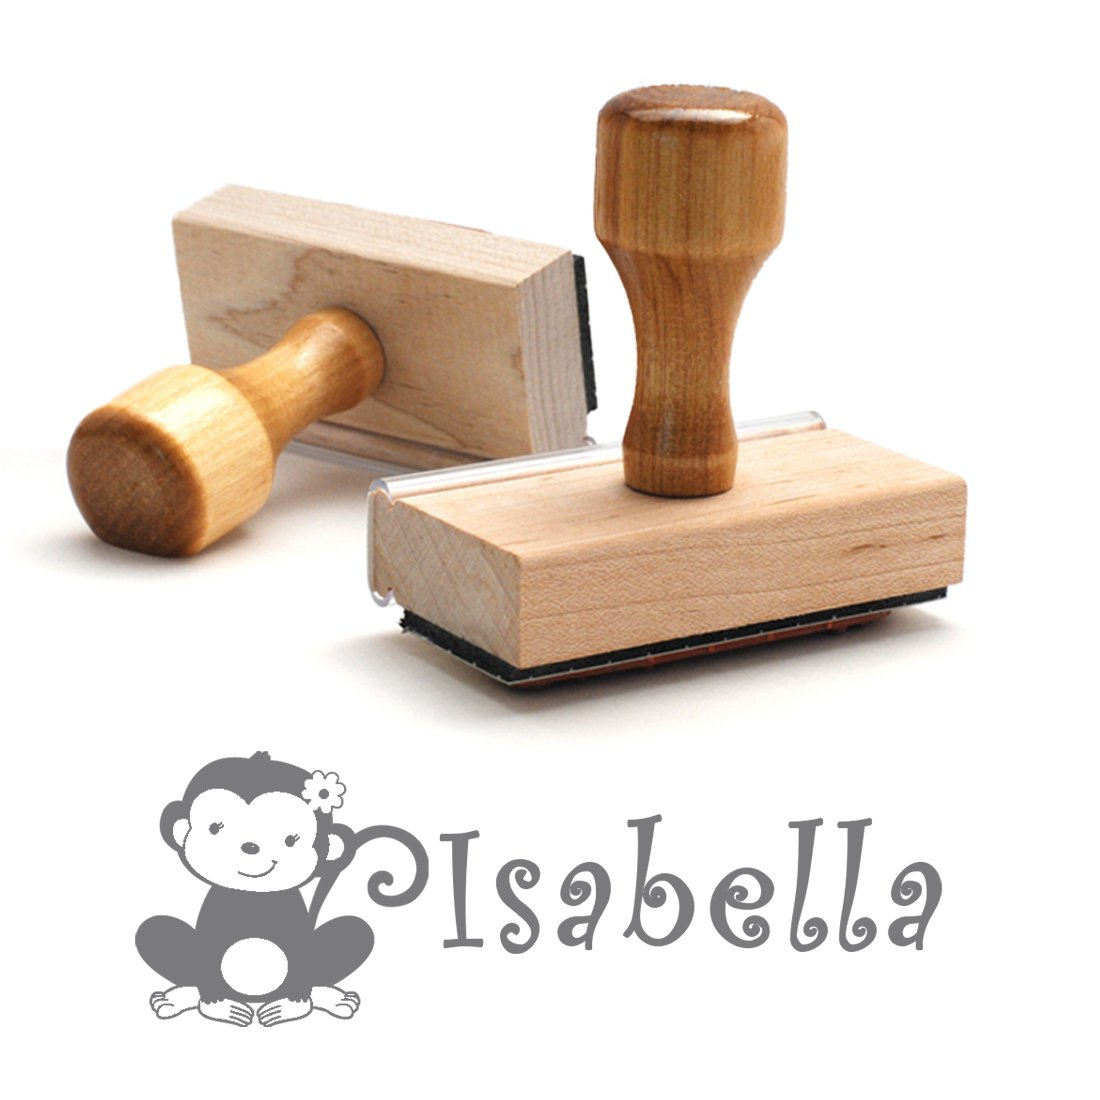 Personalized Kids Name Self Inking Stamp, Monkey, Custom Font, Customized with Name, Rubber Stamp, Naming Stamp, Children's Signature Stamper, Kids Stamp (Wooden Handle - Separate Ink Pad Required)